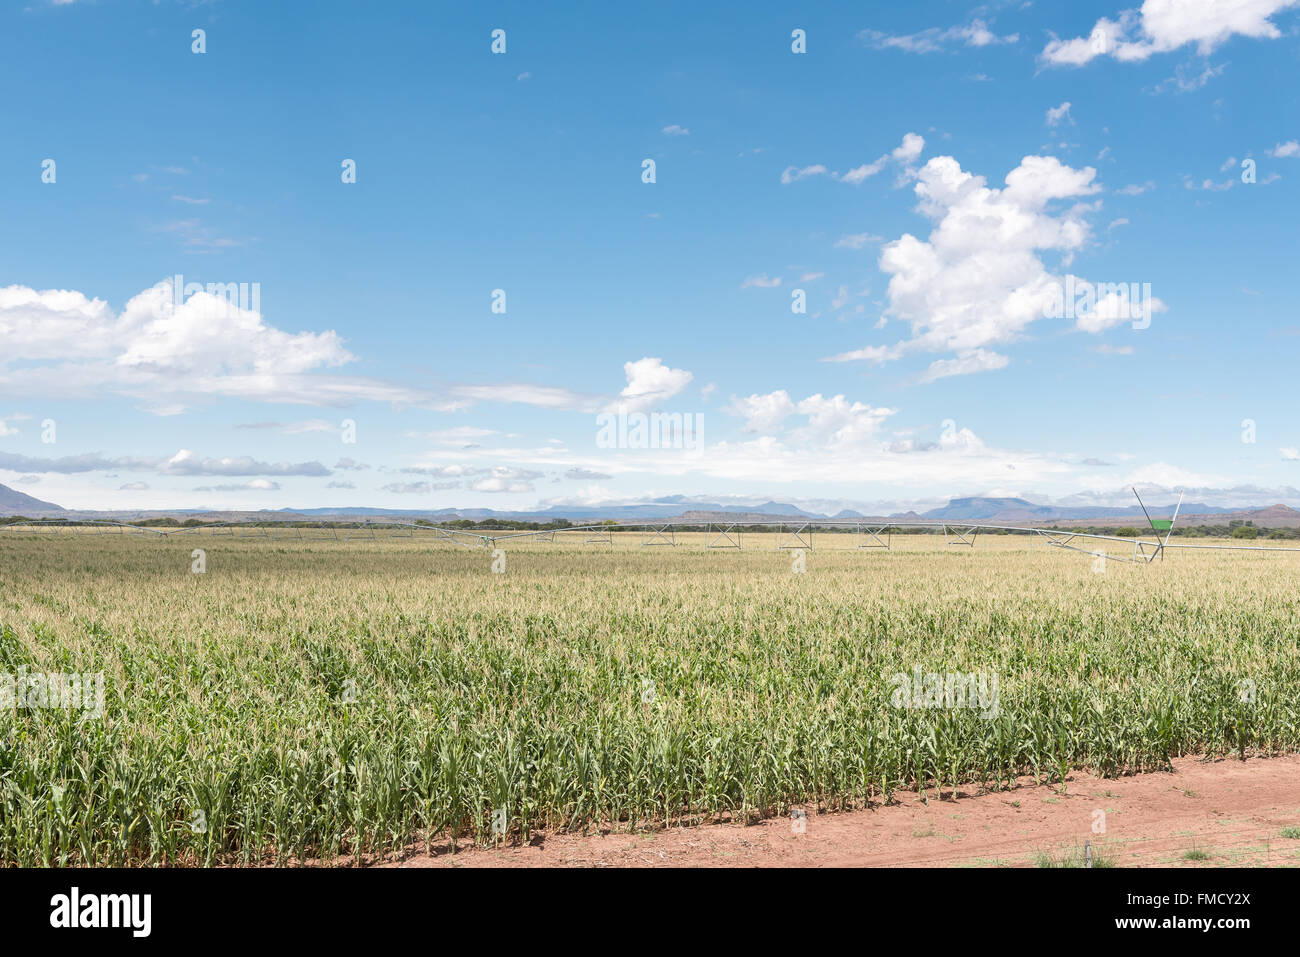 A center pivot irrigation system using rotator style pivot applicator sprinklers near Hofmeyer in a corn field in - Stock Image